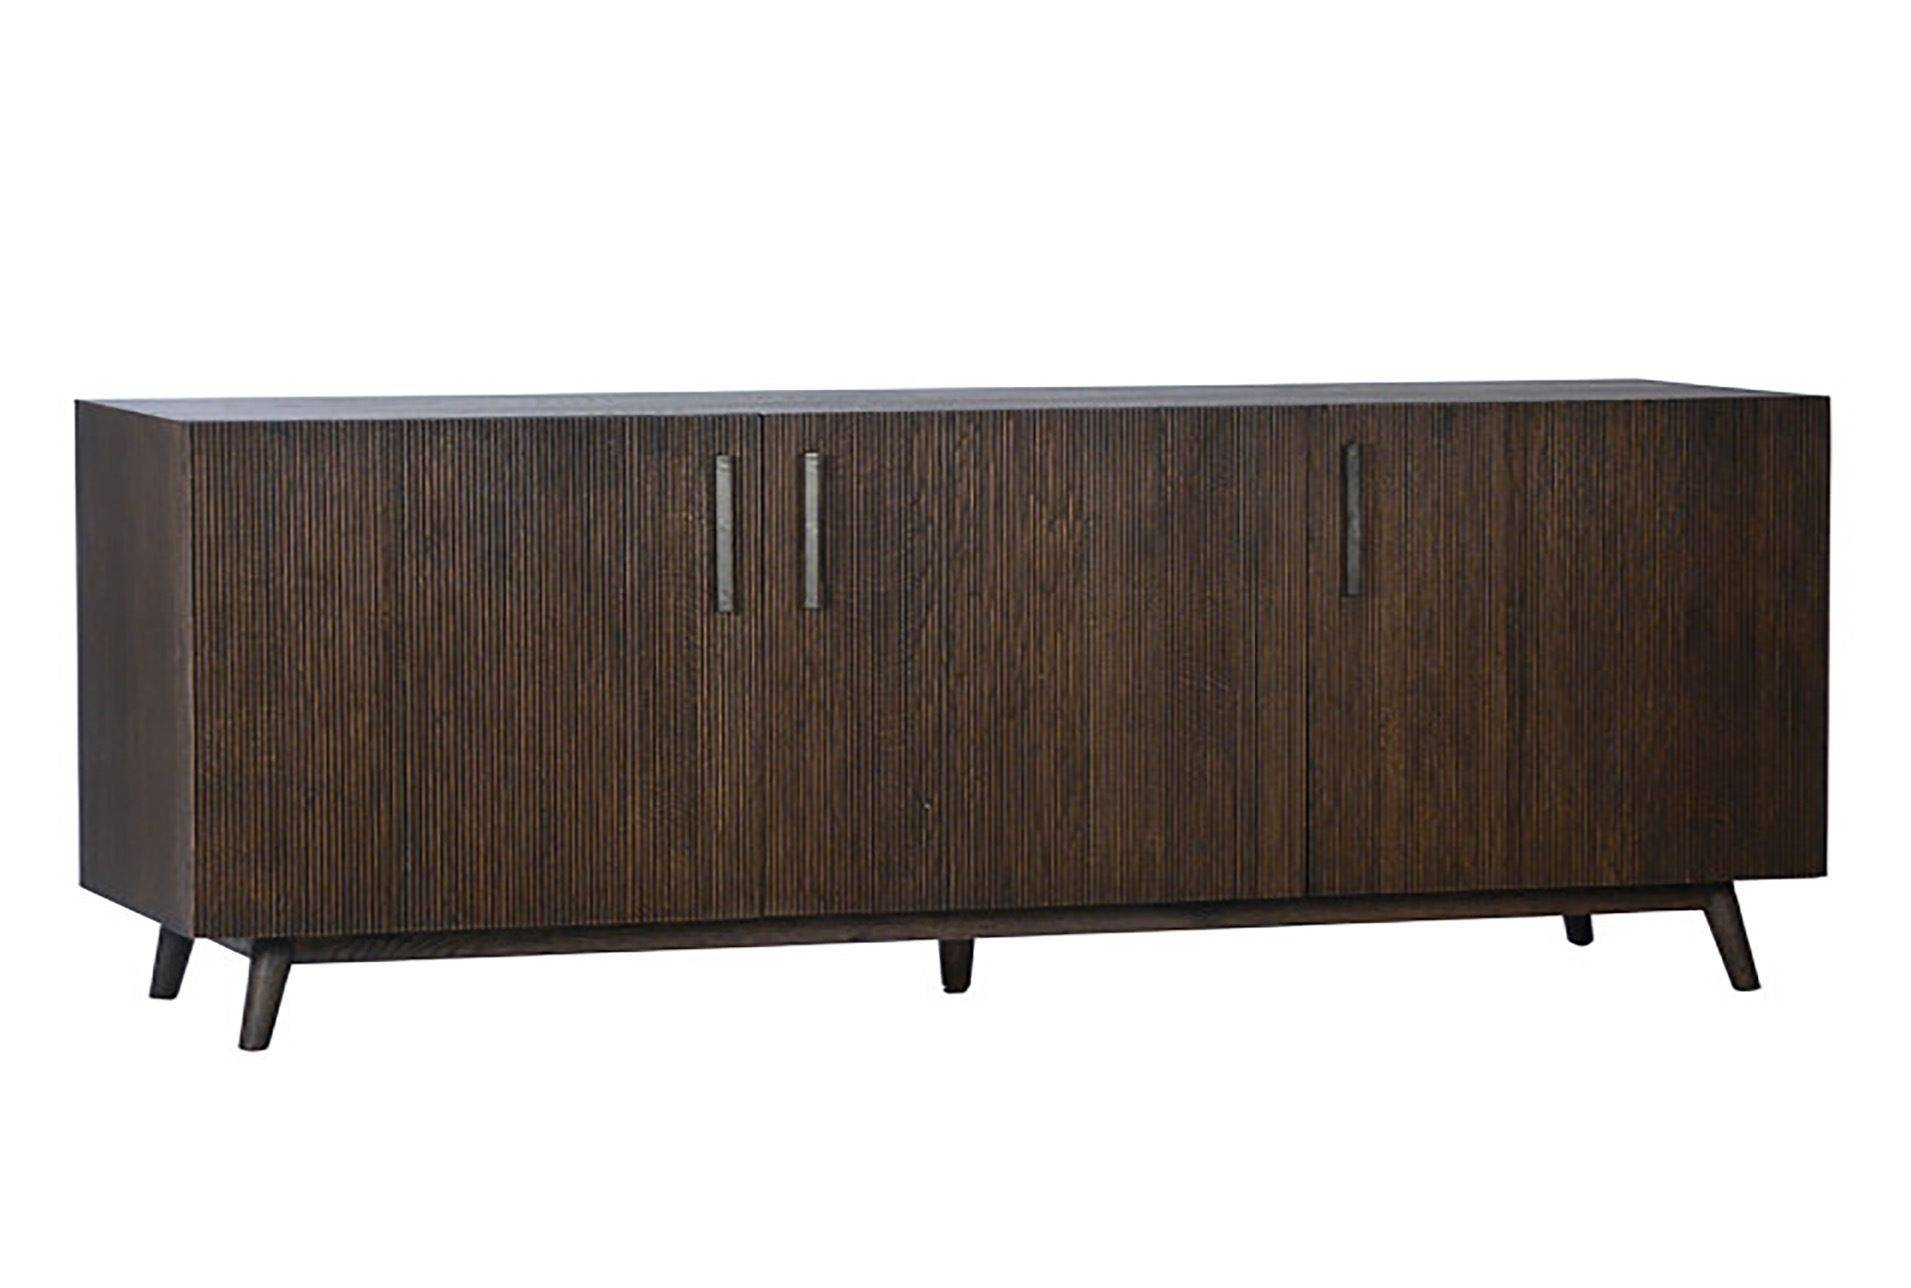 Sideboards: Awesome 72 Inch Sideboard Buffet Table Ikea, Sideboard With Regard To 72 Inch Sideboards (Photo 1 of 15)